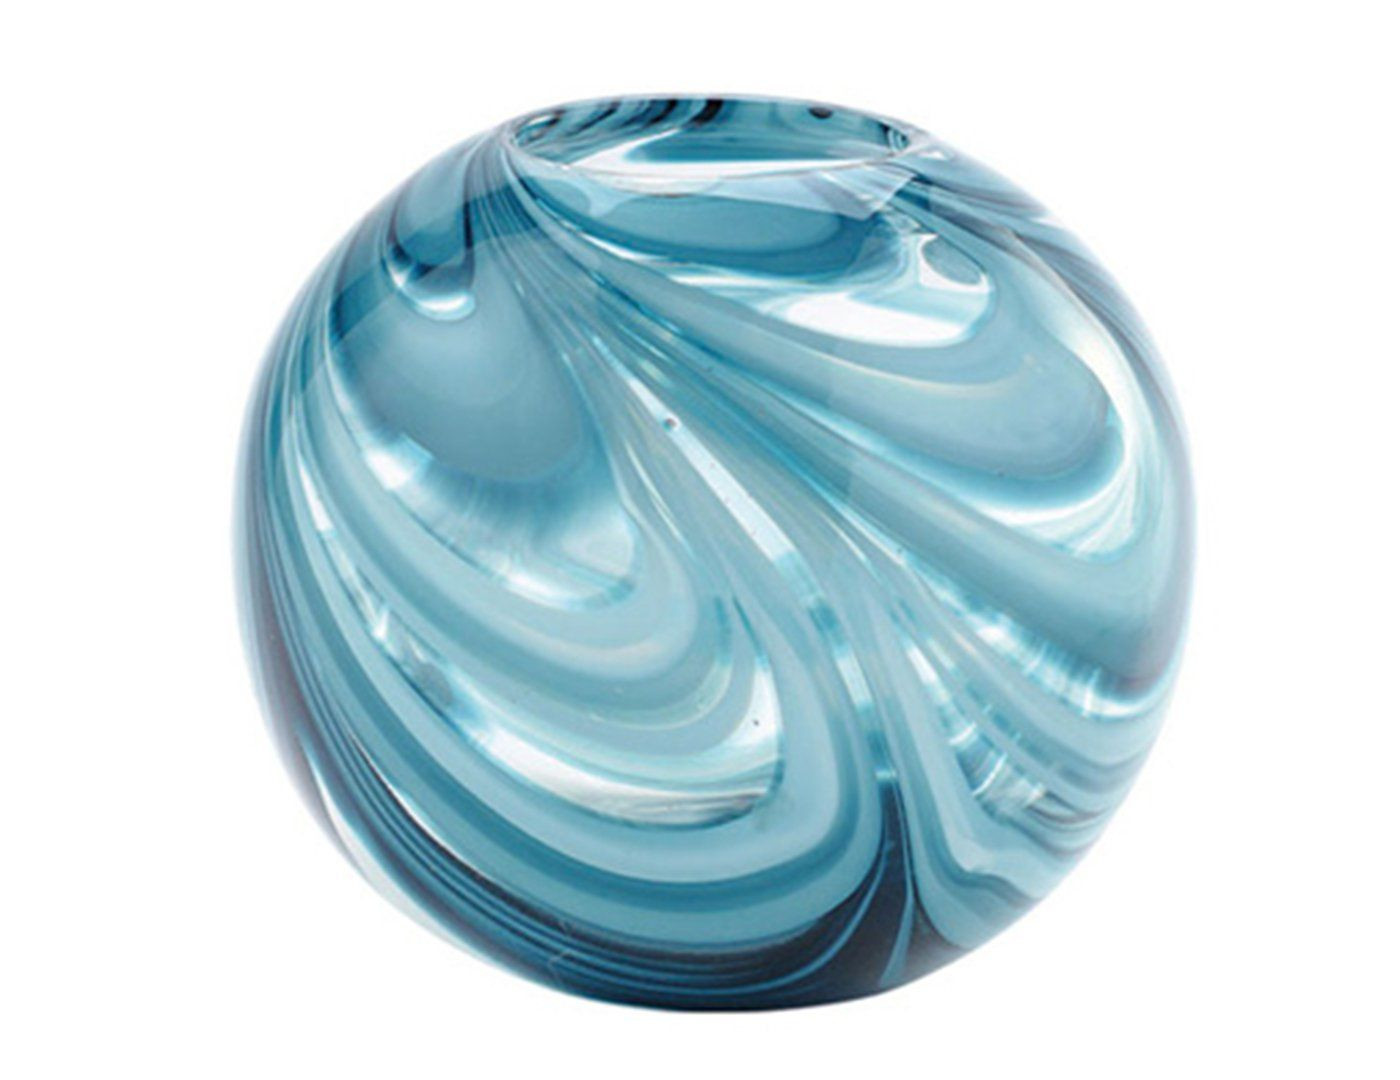 blue swirl glass vase of blue swirl glass vase mothers day gift ideas pinterest with blue swirl glass vase